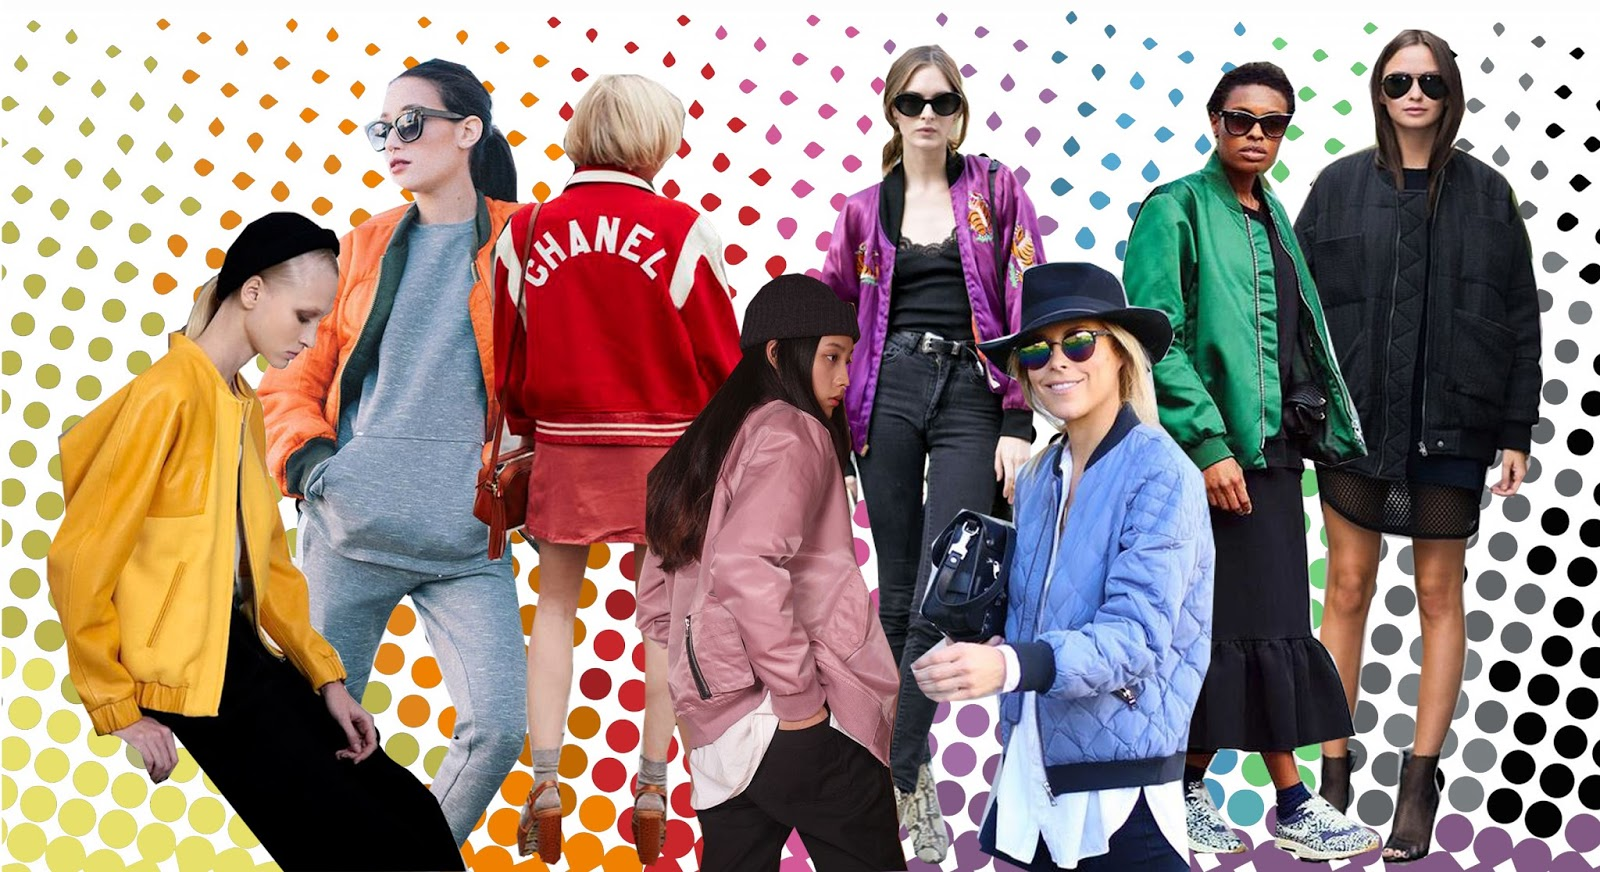 bomber jacket, donna wallace, columbine smille, happily grey, pandora sykes, street style, bombers, halftone, rainbow, graphic design, collage